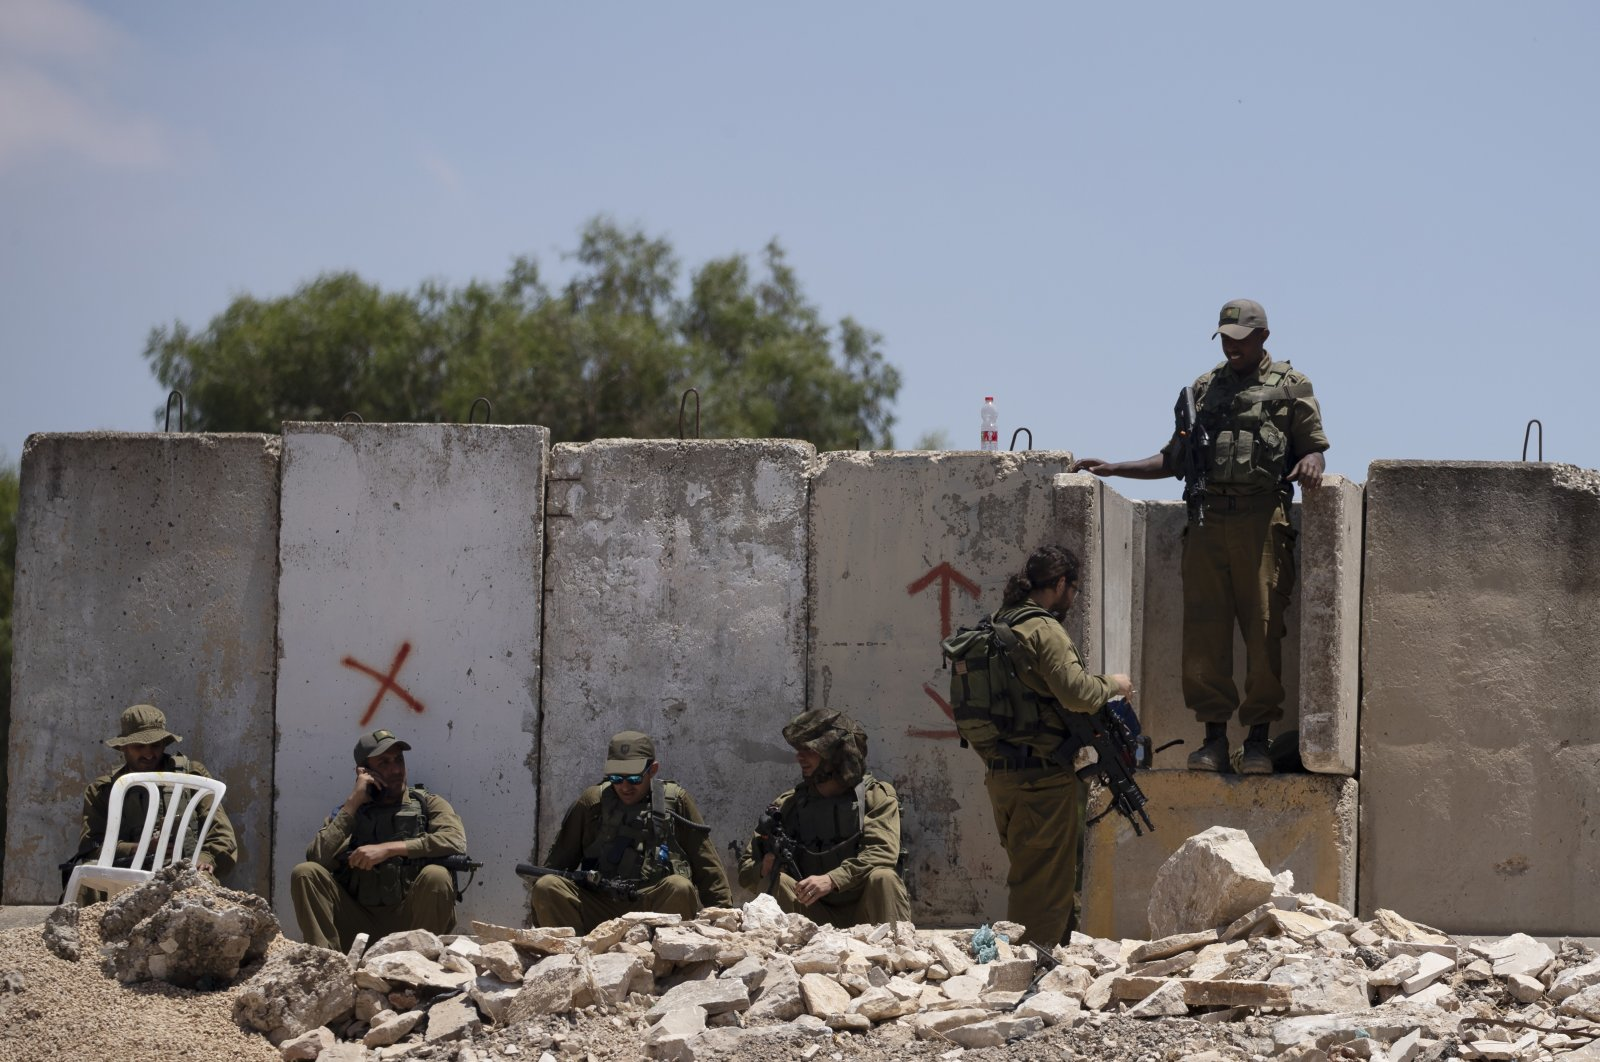 Israeli soldiers rest at the site of a vehicle attack near Hizma in the occupied West Bank, June 16, 2021. (AP Photo)